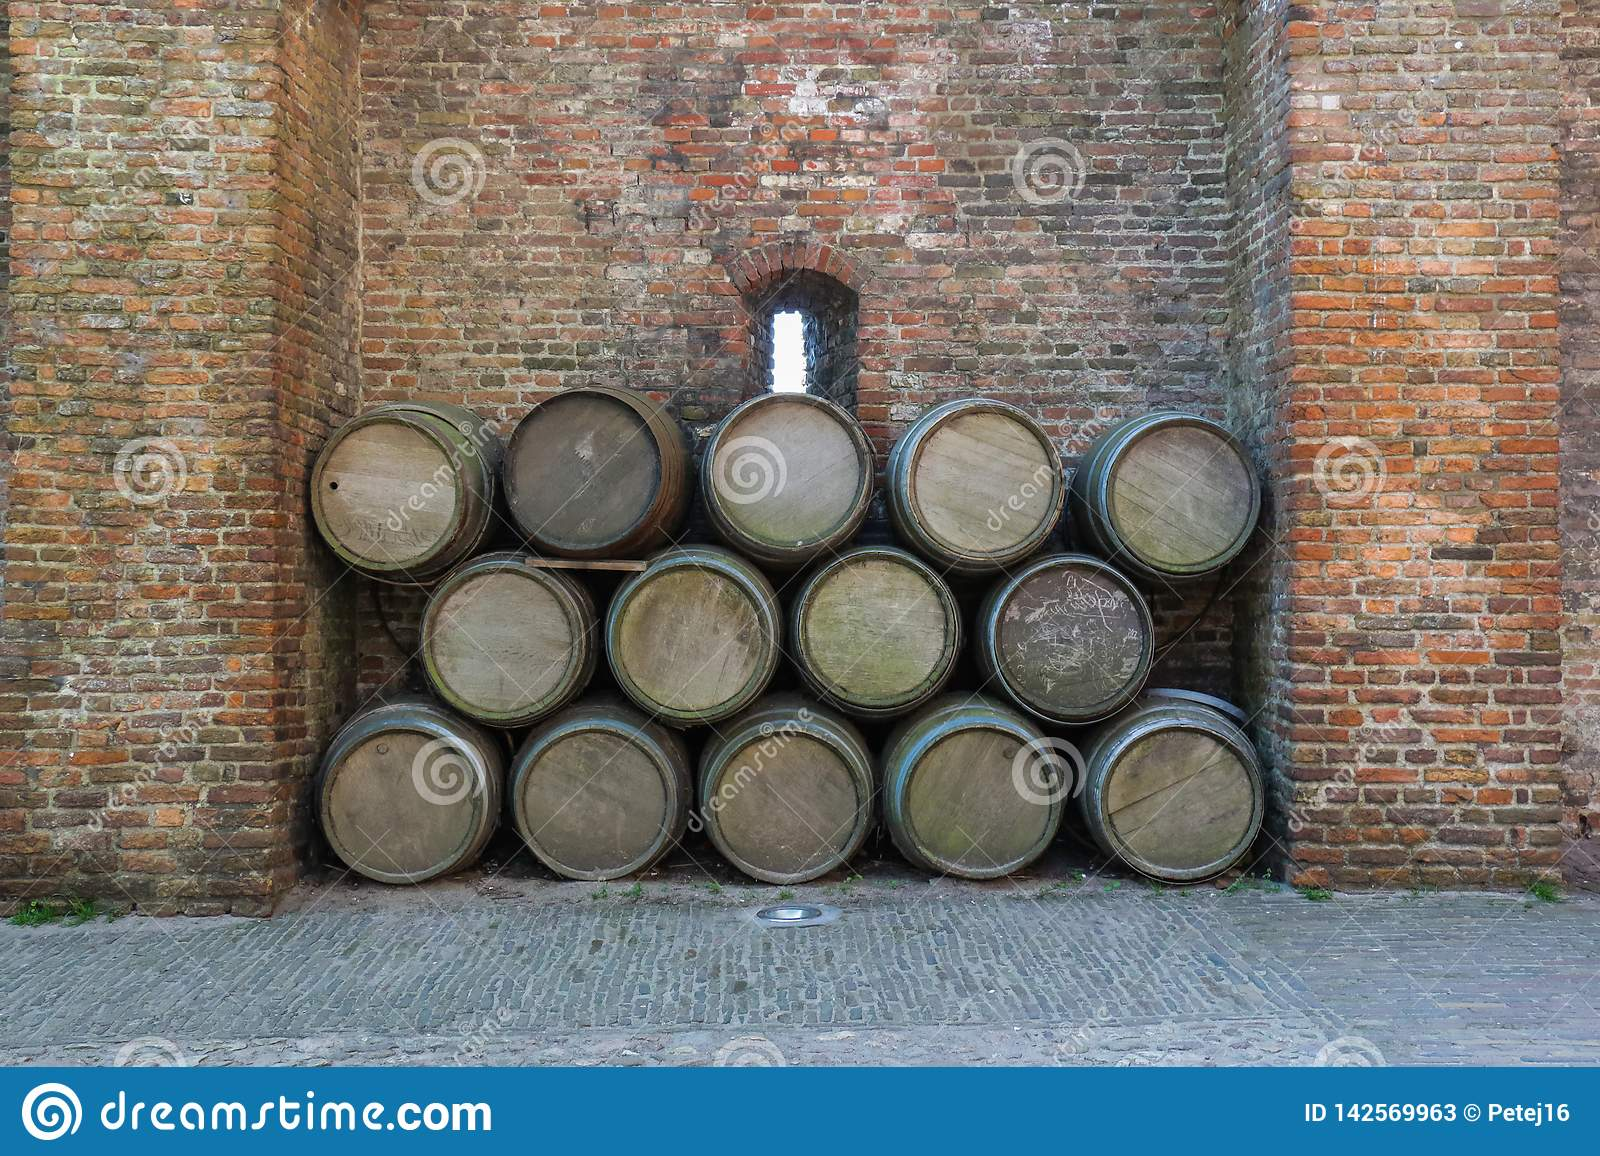 Old wine barrels stacked against a rustic brick wall